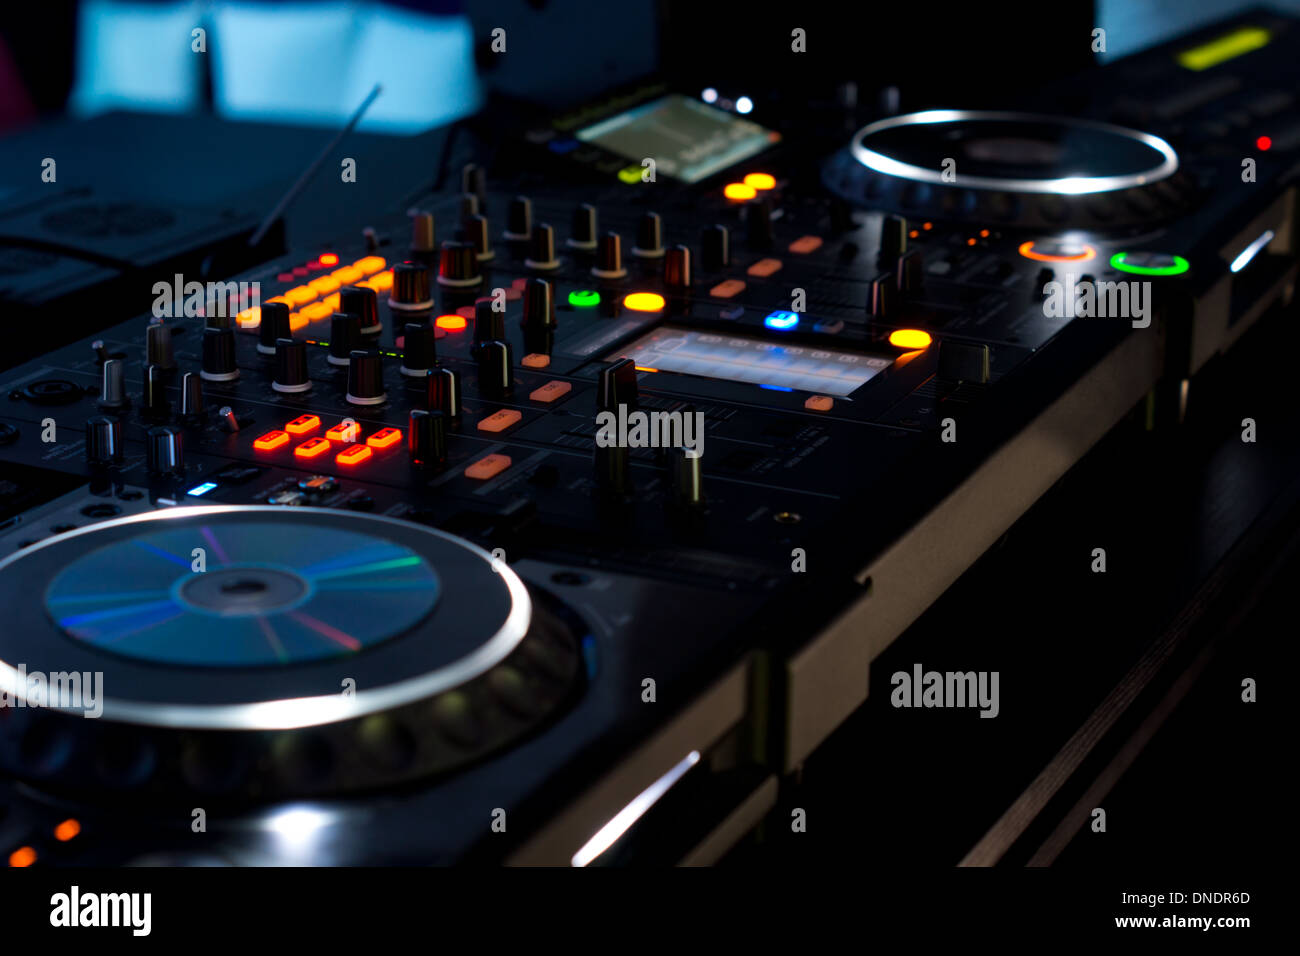 Multiple Switches Stock Photos Images Alamy Lights With Music Deck At A Disco Two Turntables And Sliders Illuminated Colourful